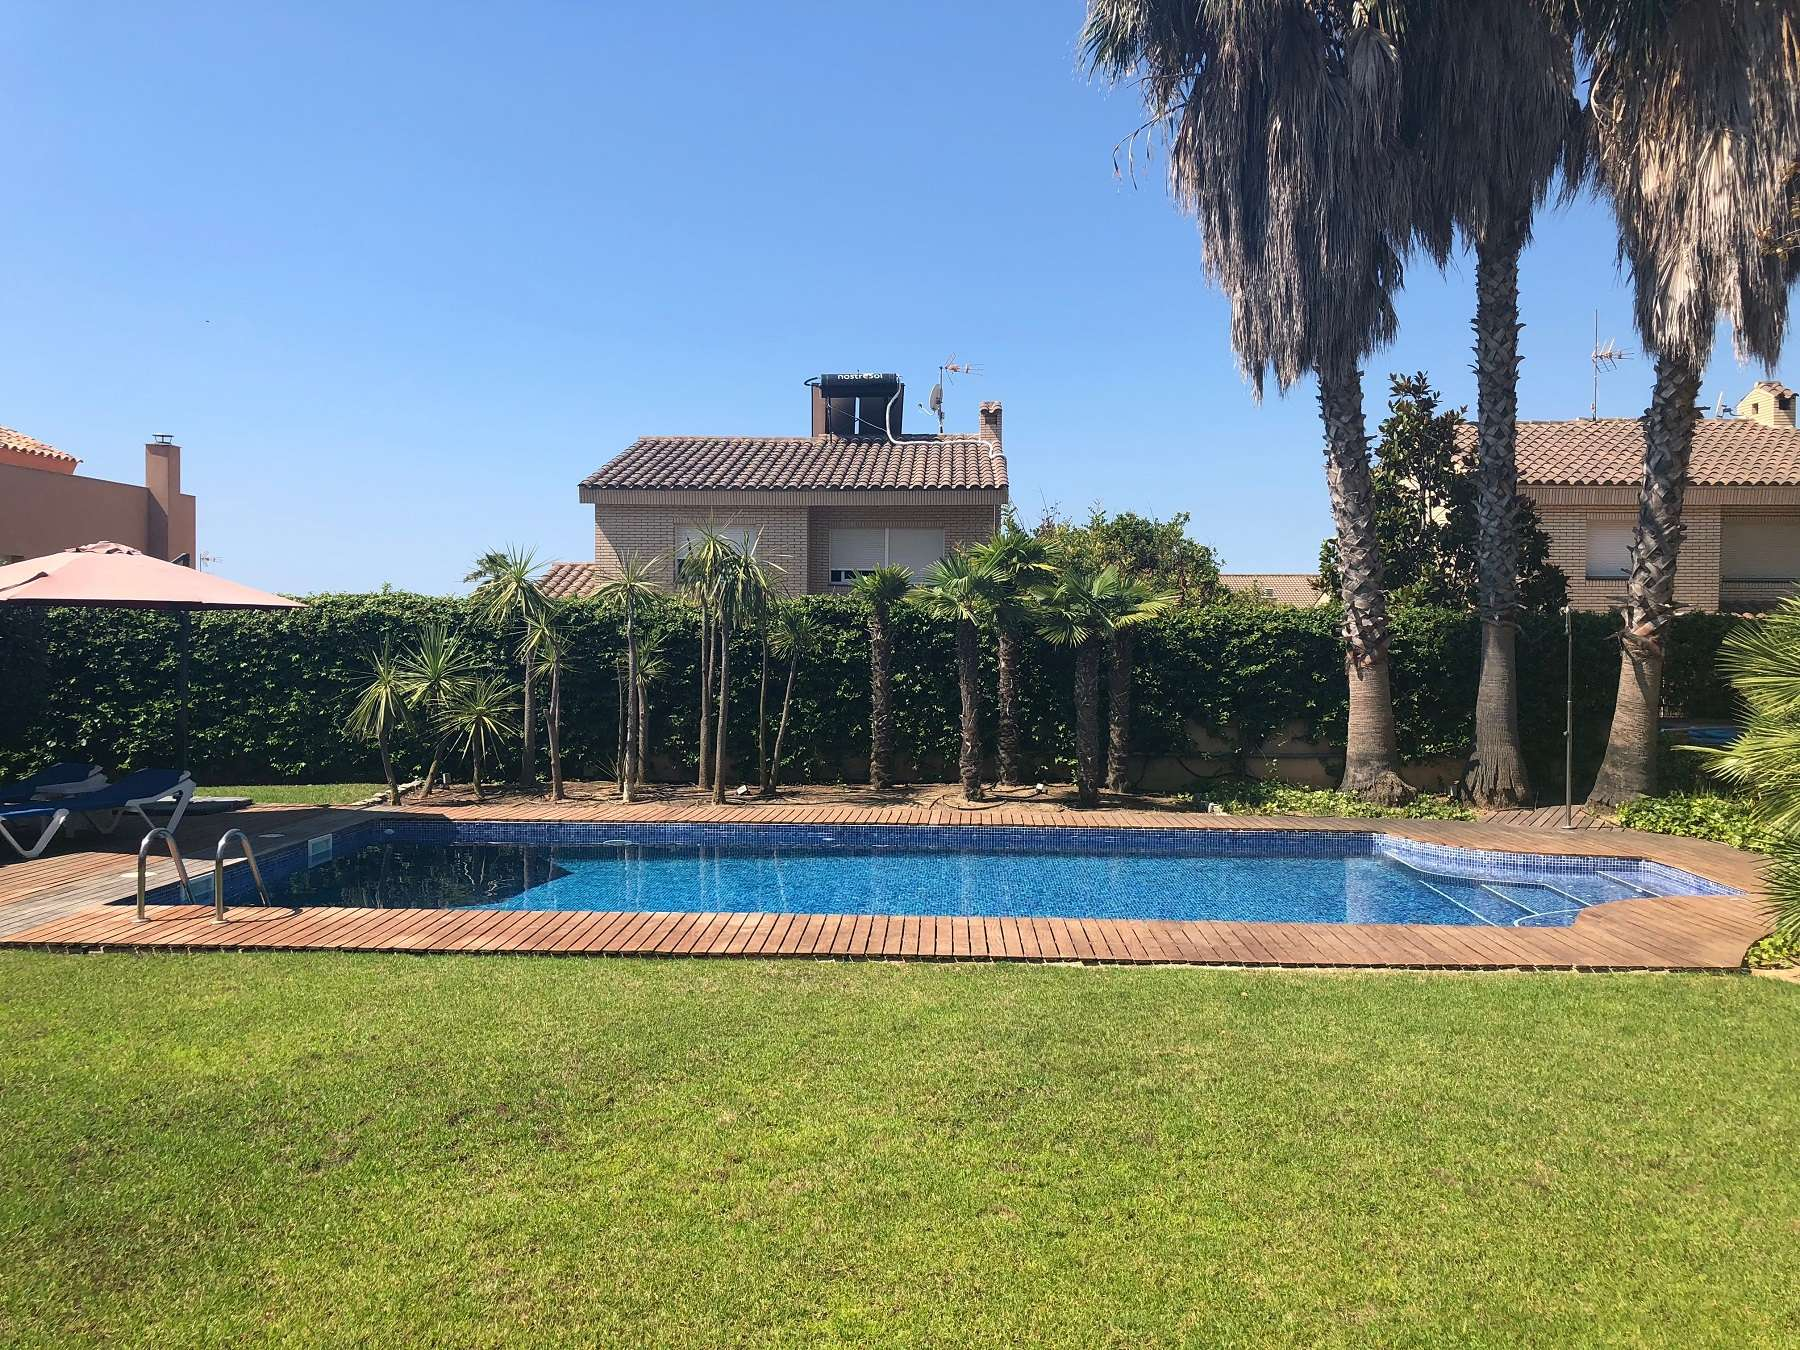 Villa for Sale in Altafulla